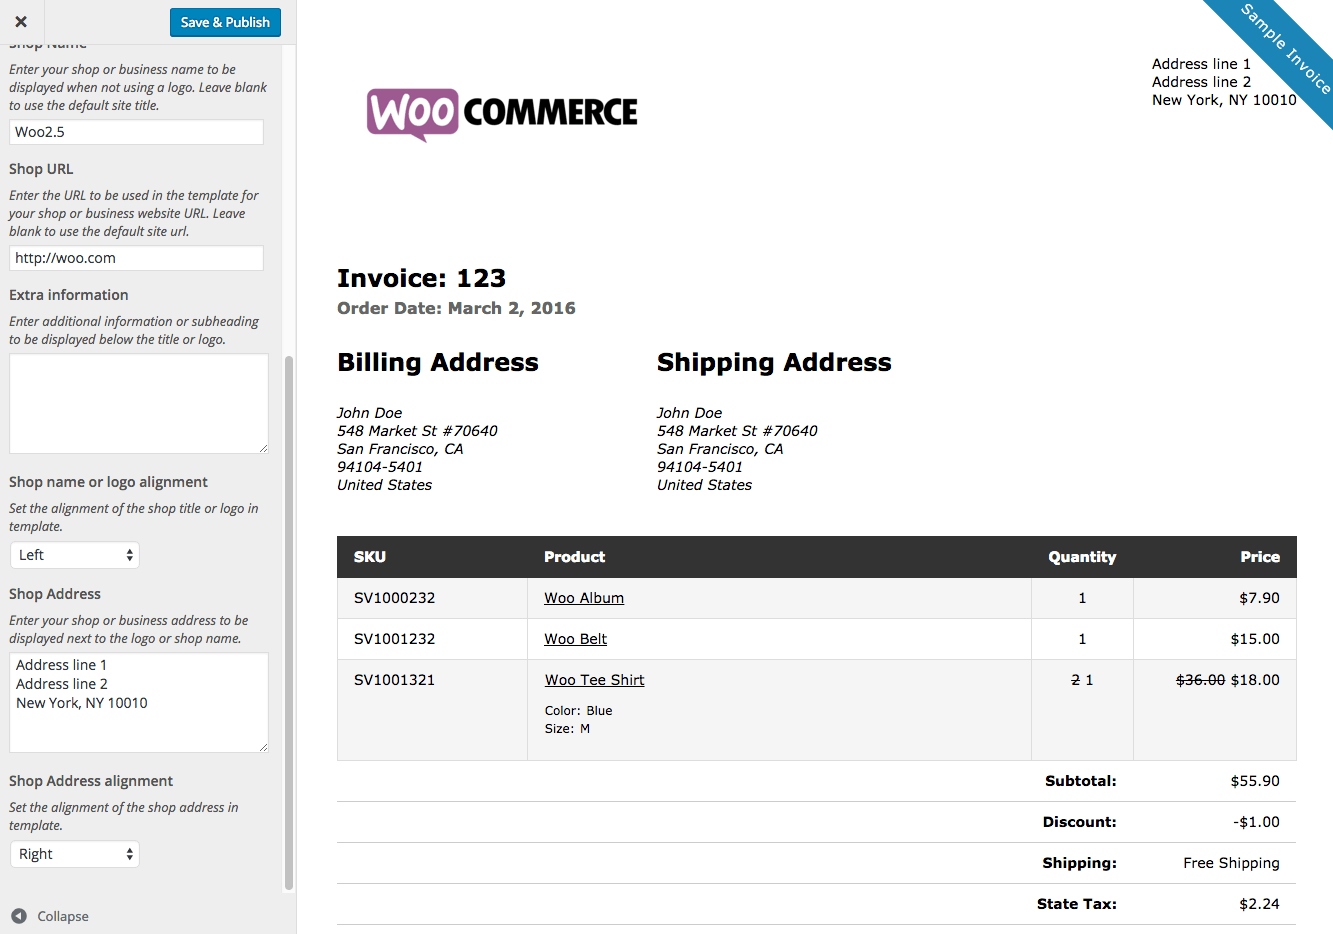 Helpingtohealus  Splendid Woocommerce Print Invoices Amp Packing Lists  Woocommerce Docs With Outstanding Woocommerce Print Invoices  Packing Lists Customizer With Astonishing Work Receipts Also Receipt Of Cash Payment In Addition Template For Sales Receipt And Personal Property Receipt As Well As Toys R Us E Receipt Additionally Neat Receipts Quickbooks From Docswoocommercecom With Helpingtohealus  Outstanding Woocommerce Print Invoices Amp Packing Lists  Woocommerce Docs With Astonishing Woocommerce Print Invoices  Packing Lists Customizer And Splendid Work Receipts Also Receipt Of Cash Payment In Addition Template For Sales Receipt From Docswoocommercecom